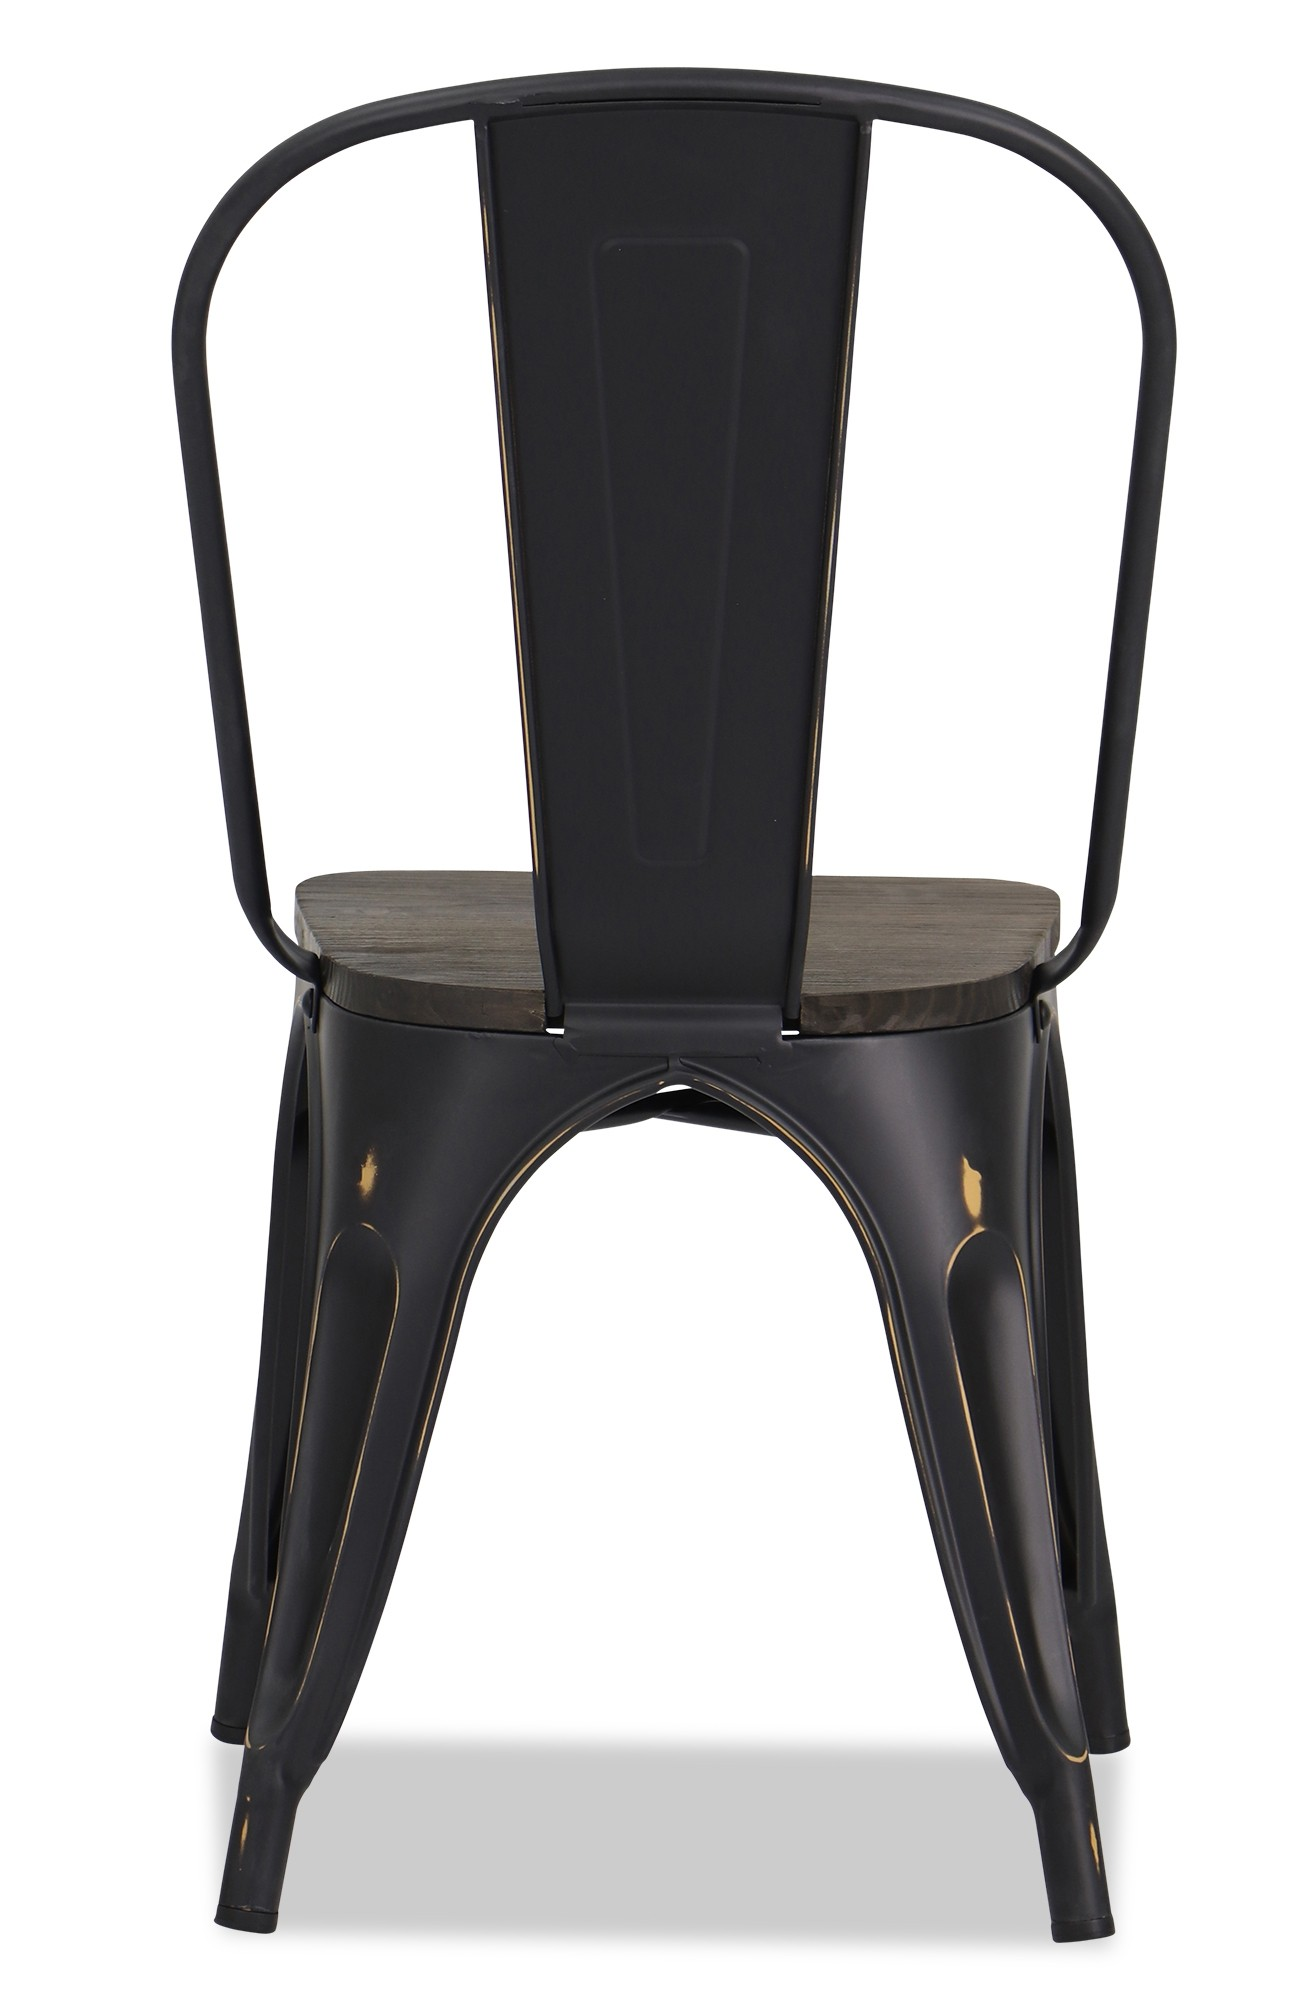 Retro Dining Chair Retro Metal Chair With Wooden Seat In Antique Black